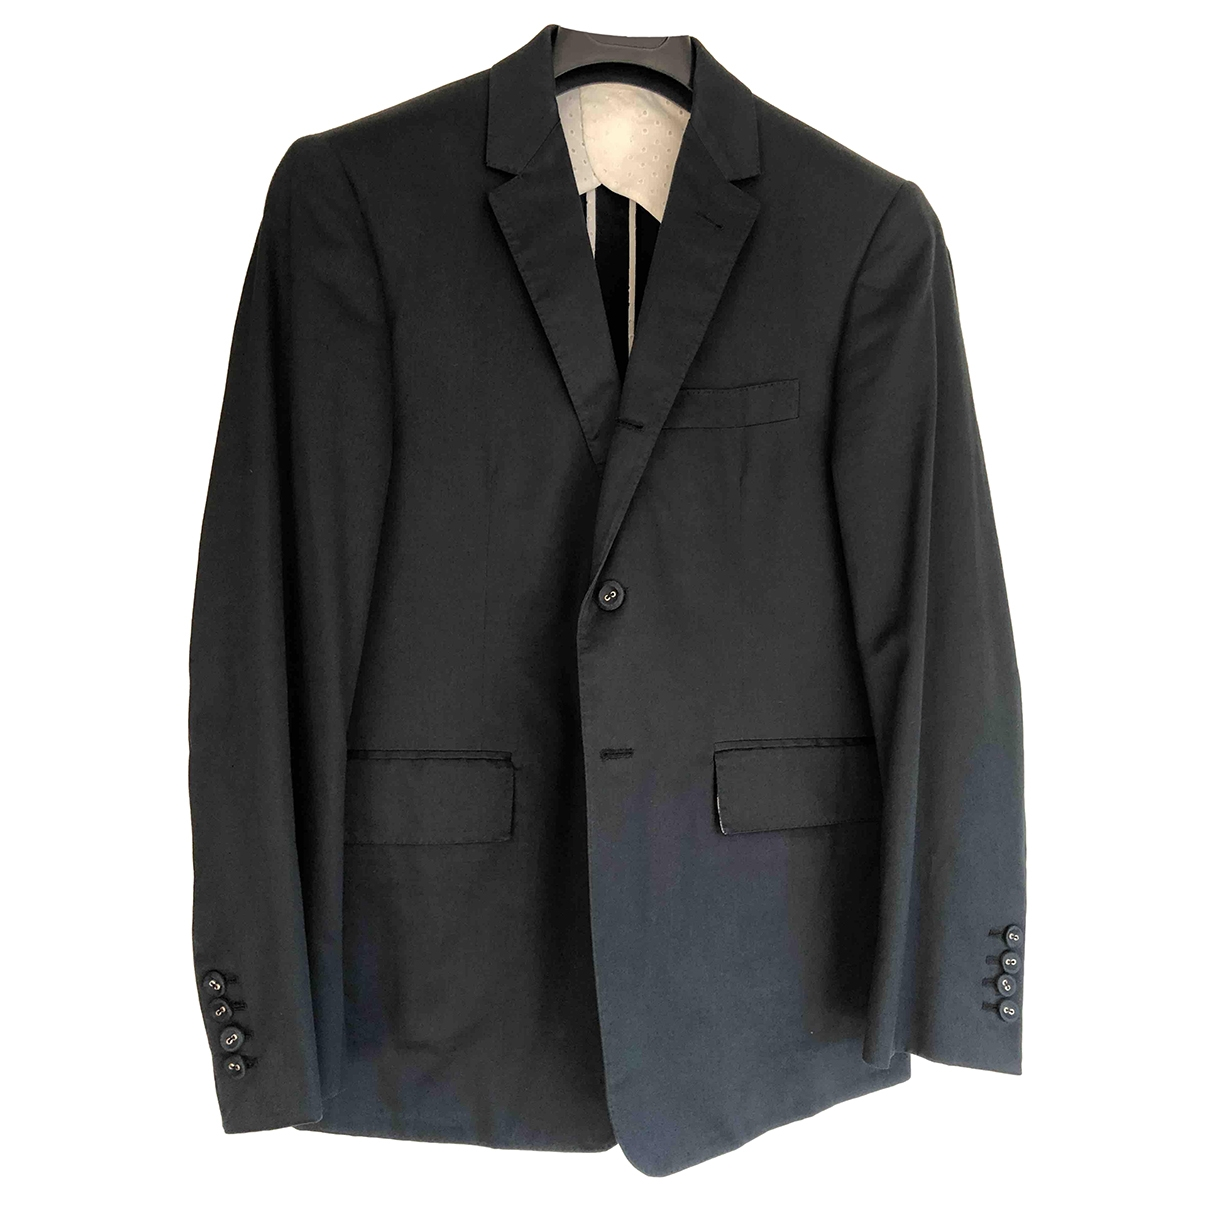 Thom Browne \N Black Cotton jacket  for Men 1 0 - 6